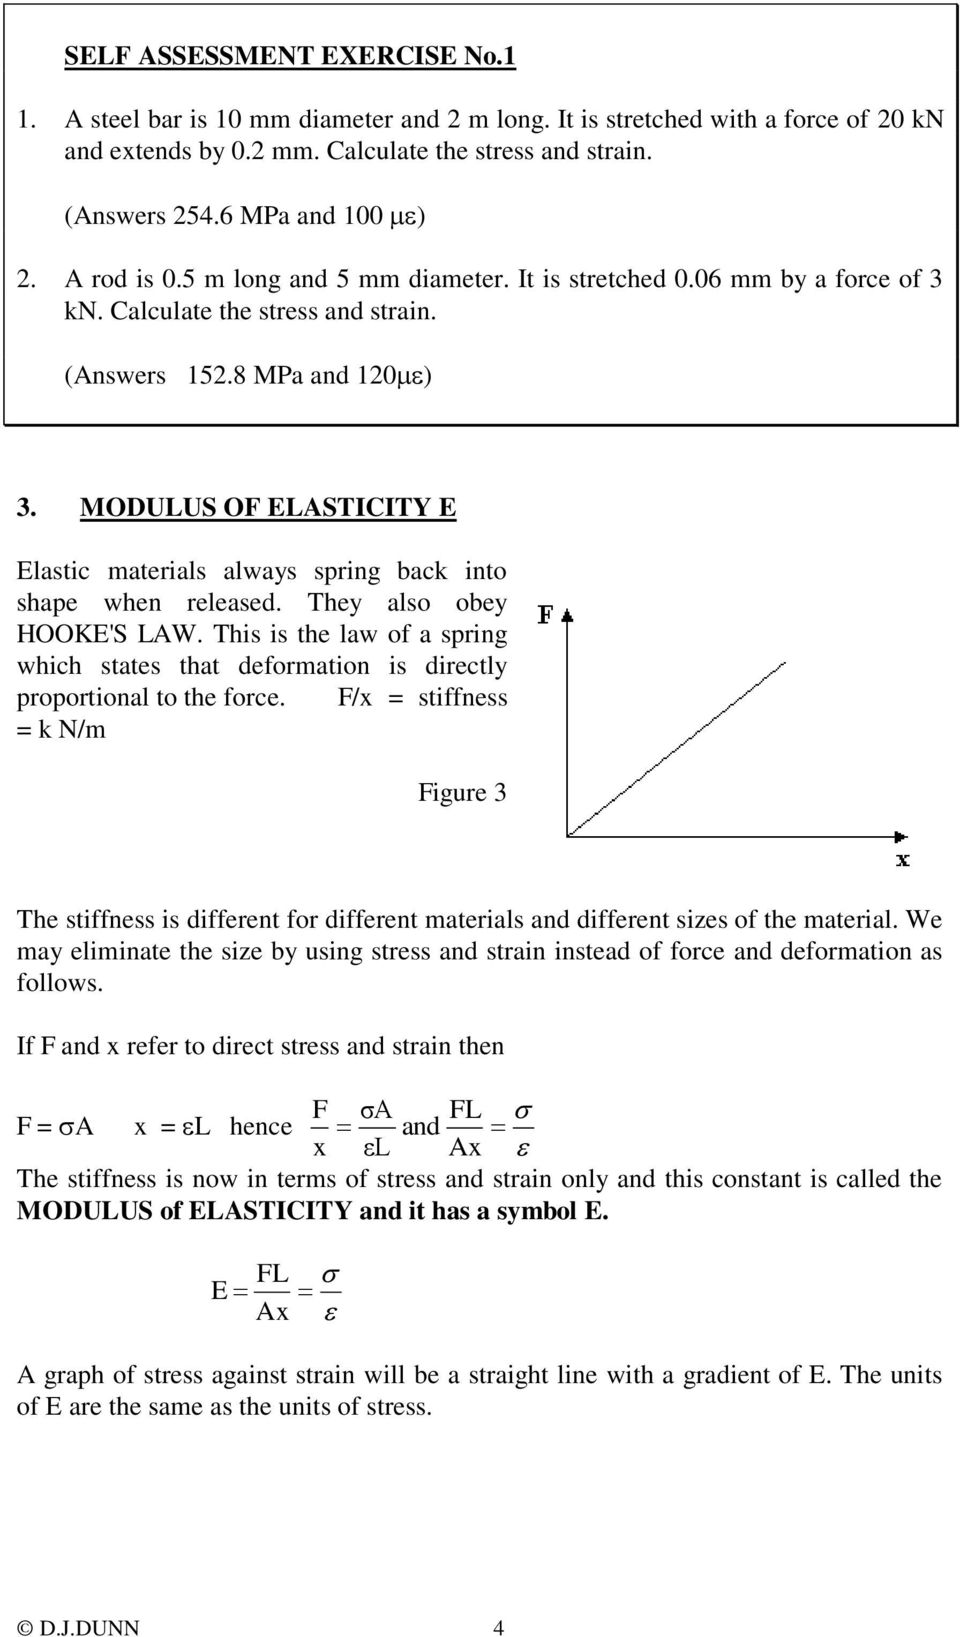 MODULUS O ELASTICITY E Elastic materials always spring back into shape when released. They also obey HOOKE'S LAW.